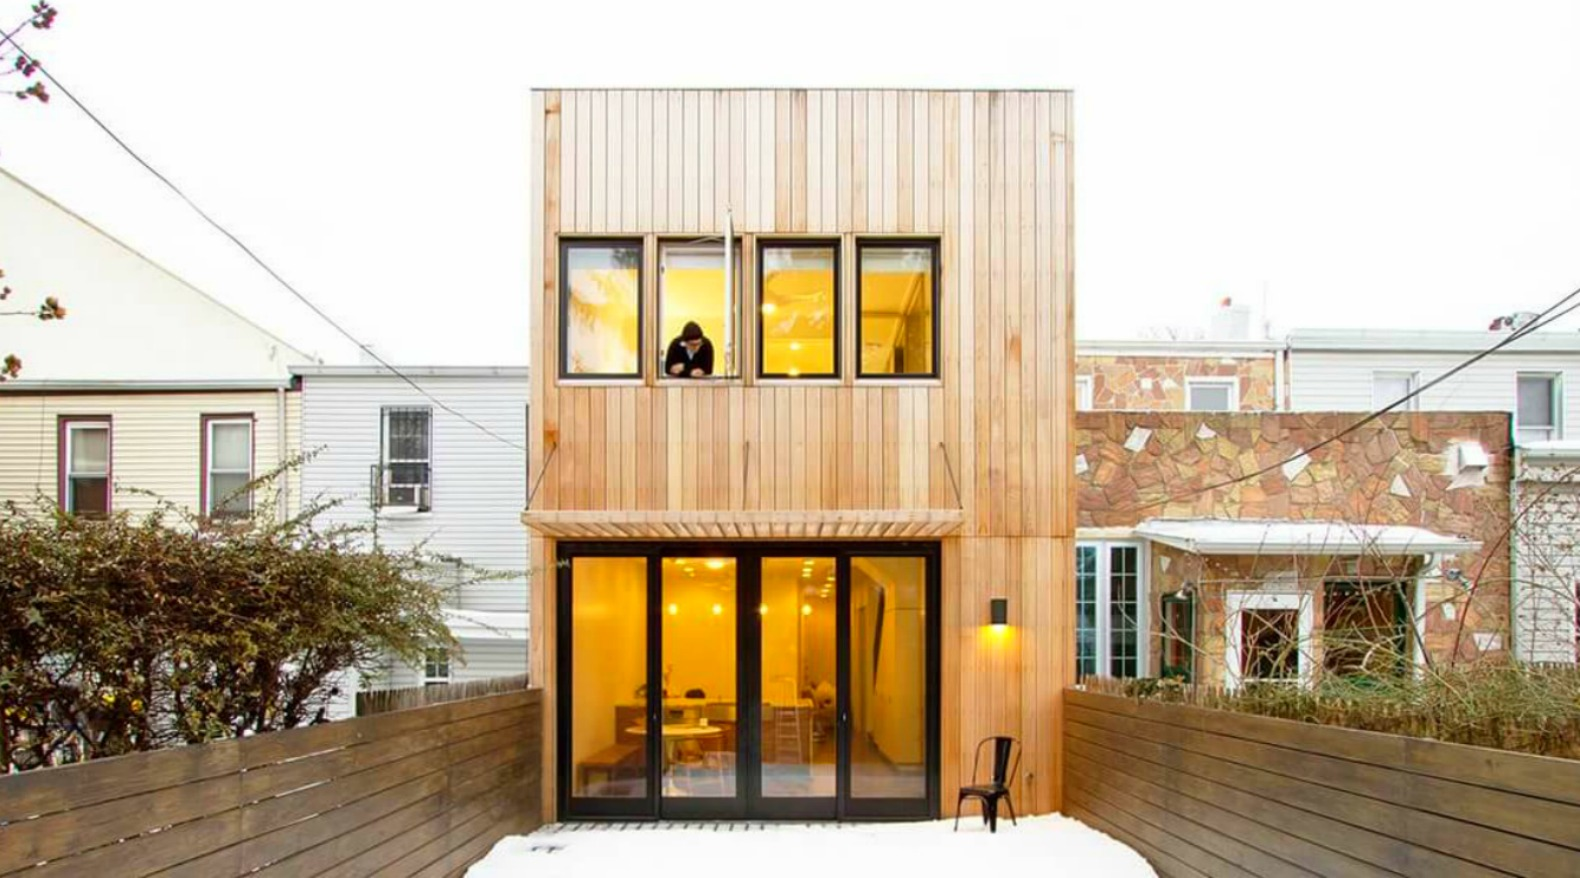 Century-old row house transformed into modern home that can flex with the owners' needs